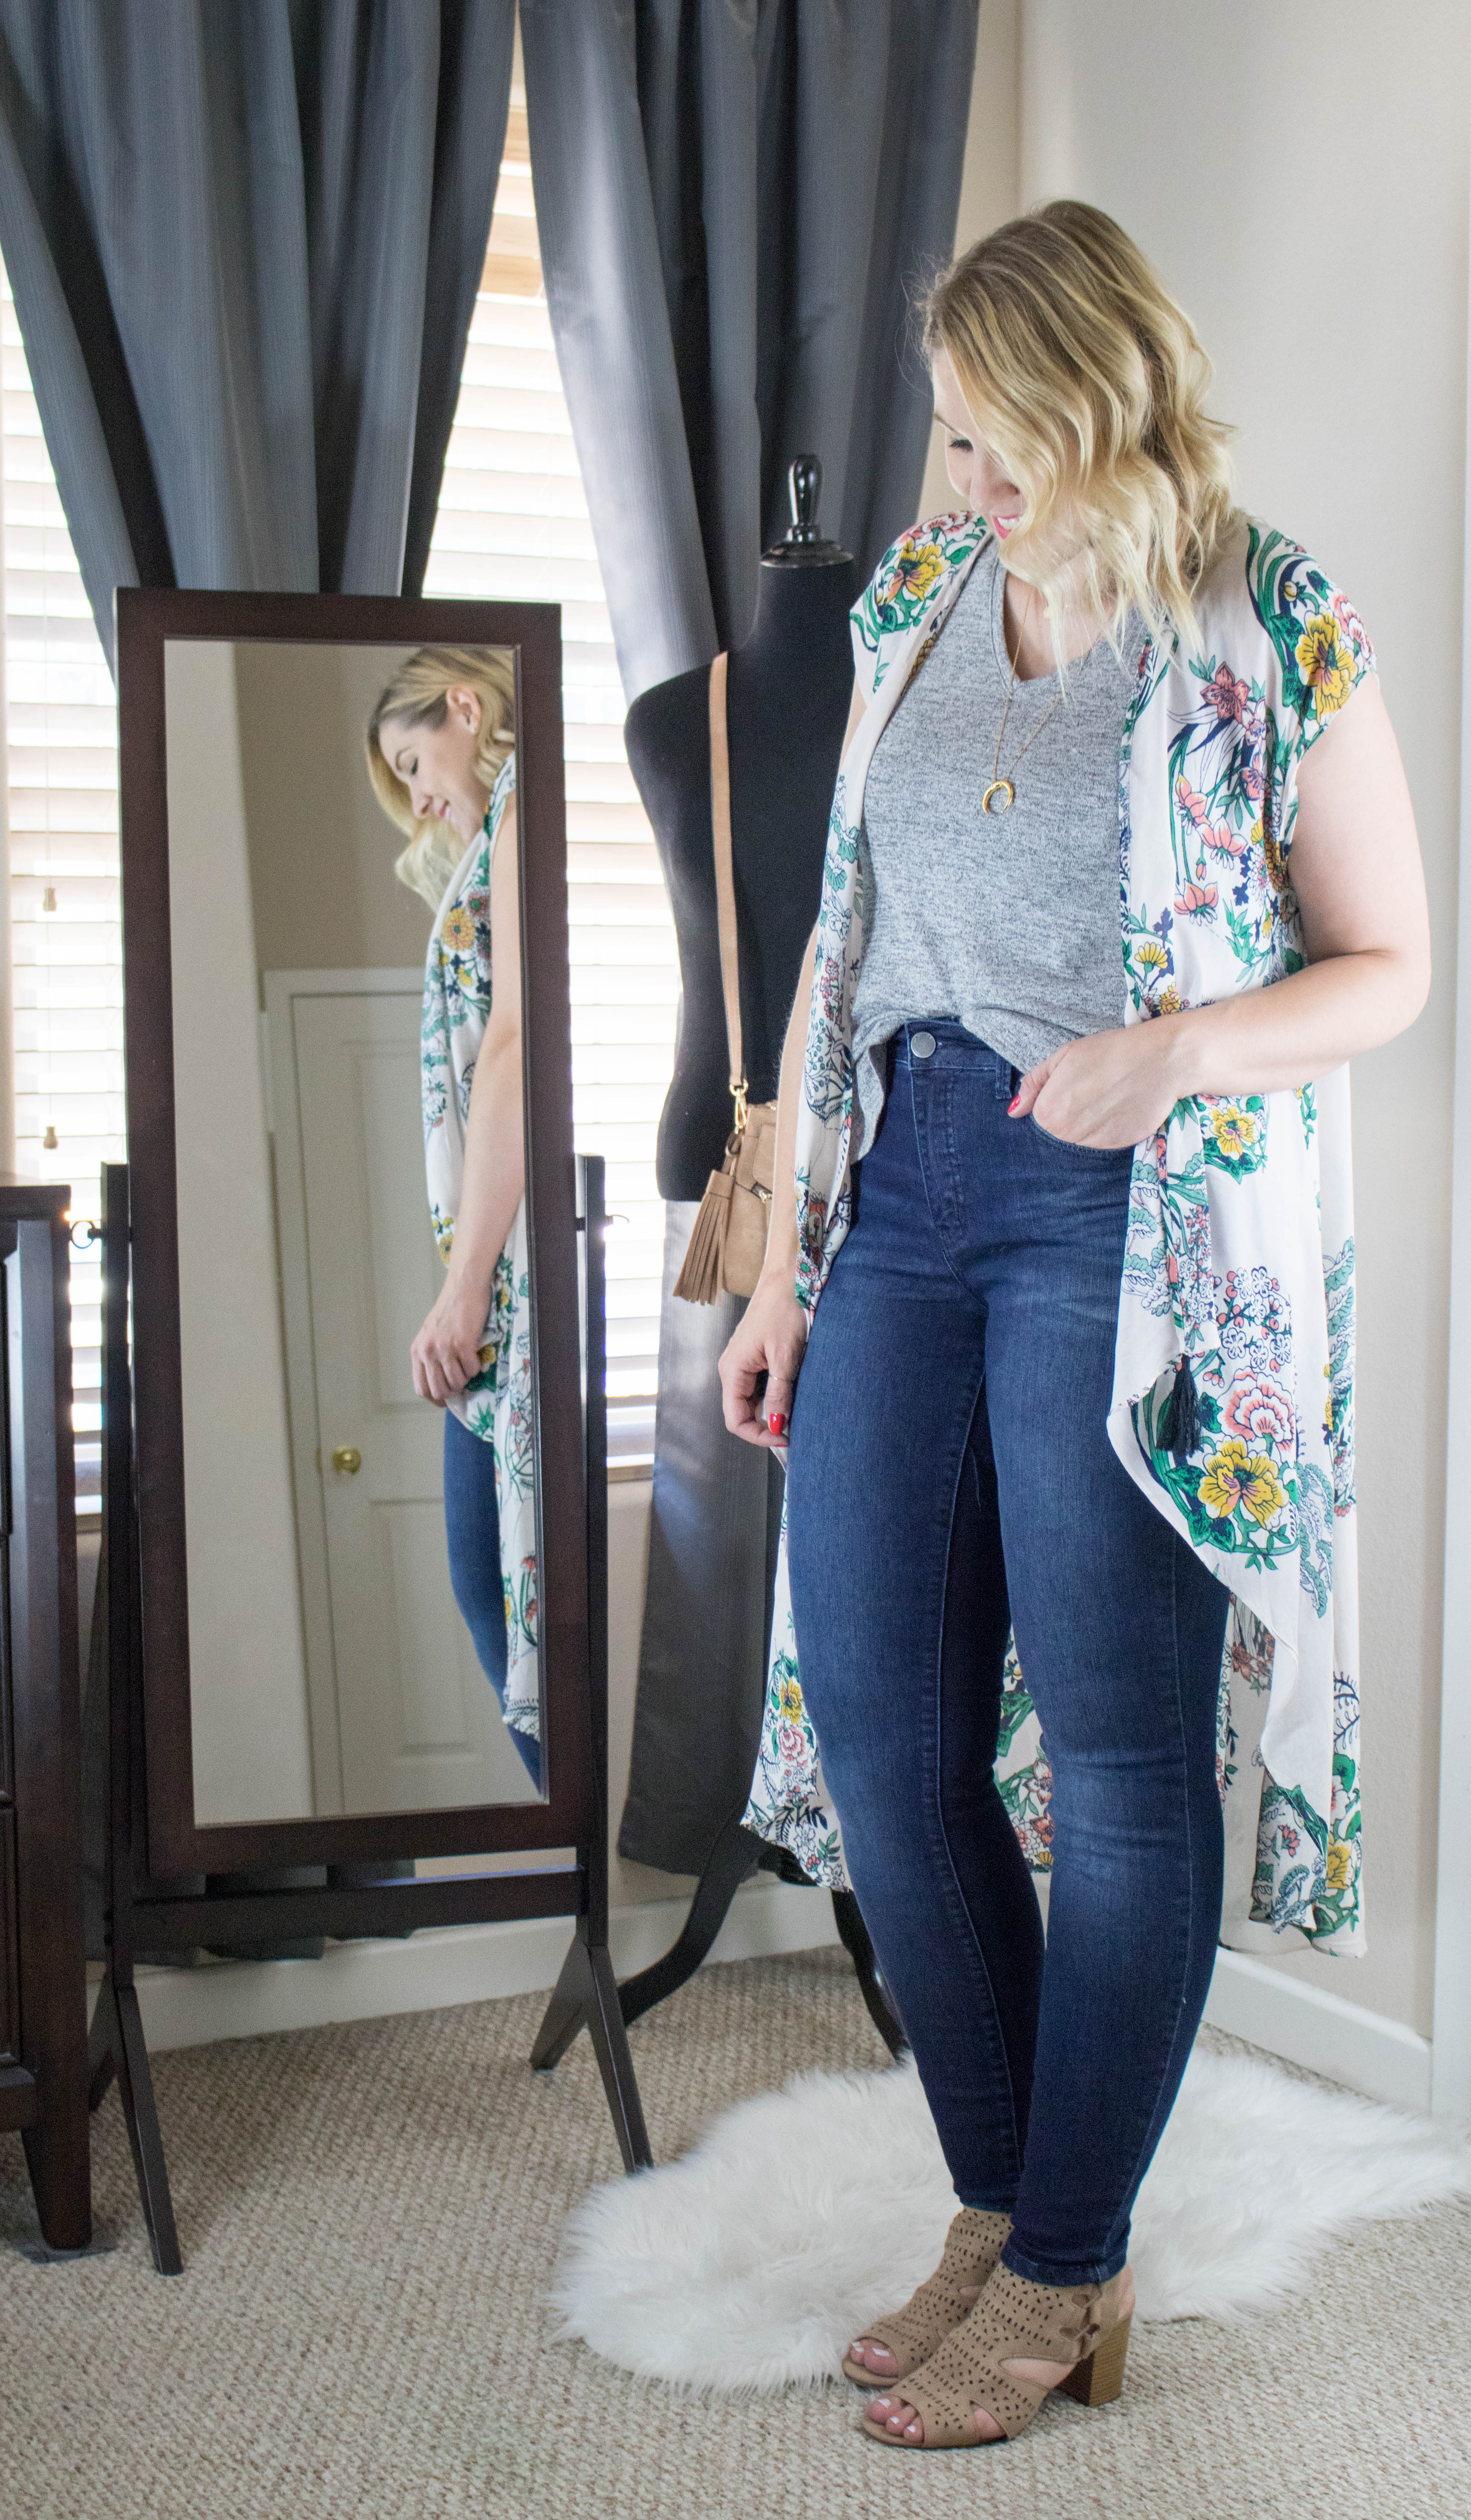 best high rise jeans from maurices #jeans #denim #skinnyjeans #styleblogger